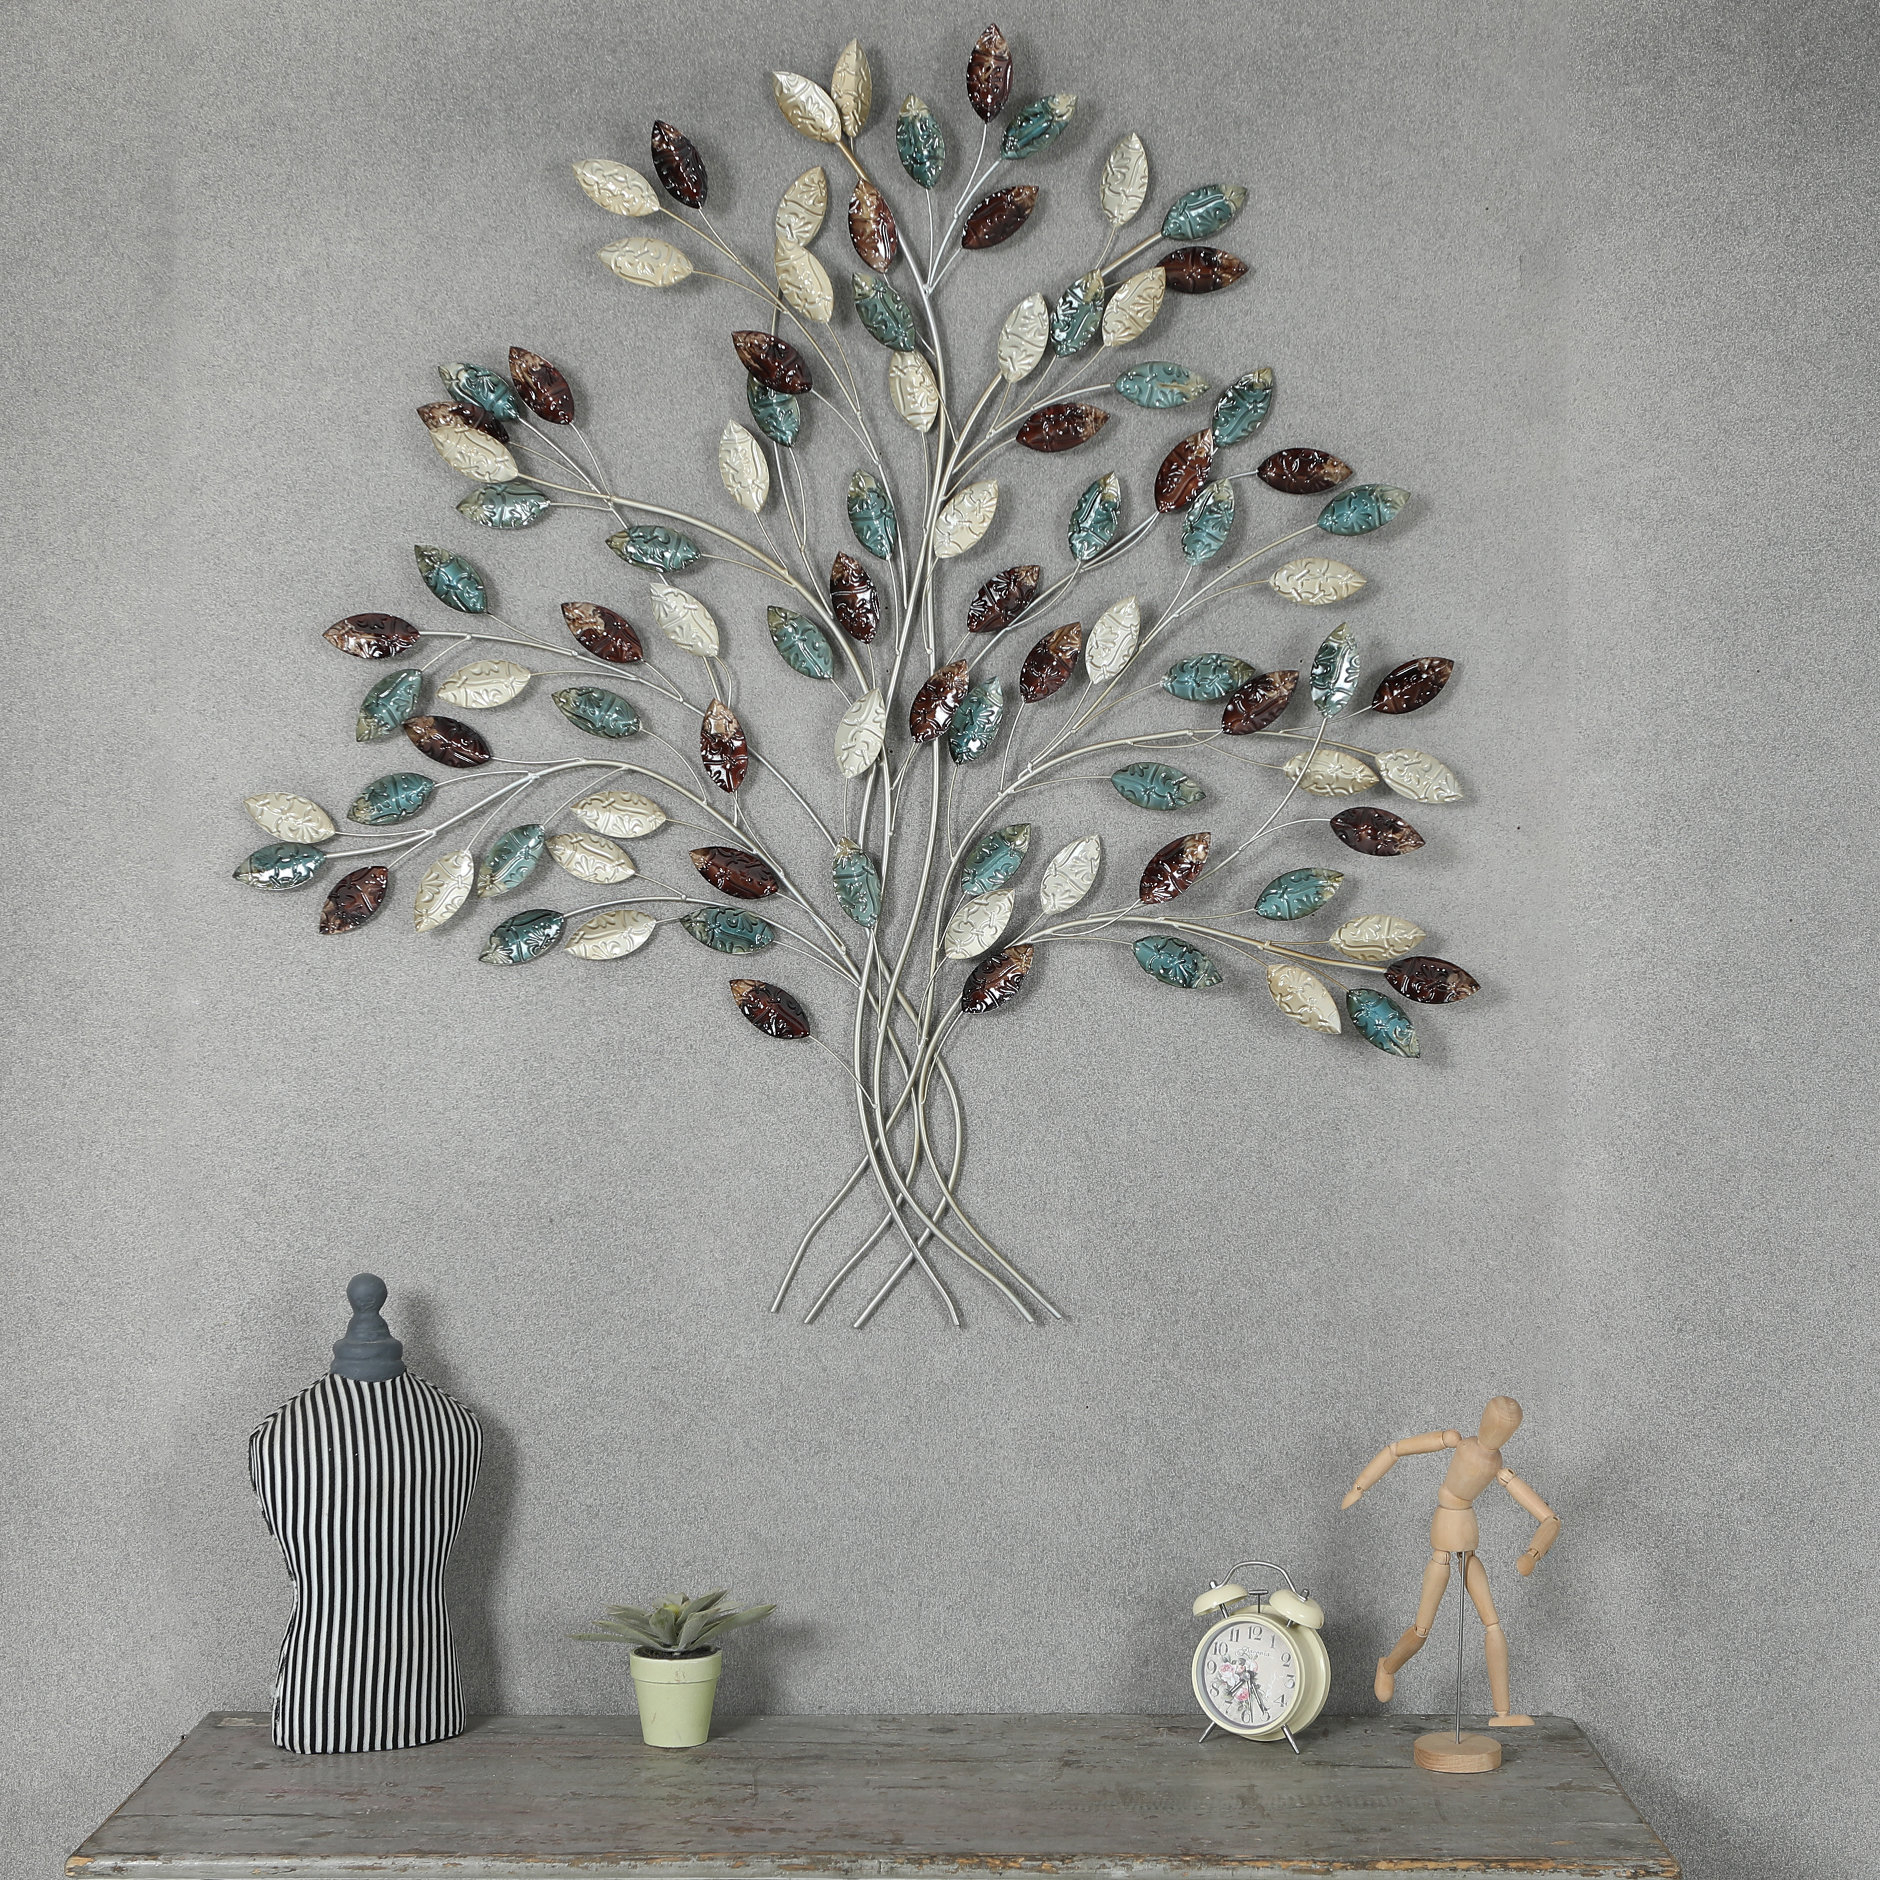 Windswept Tree Wall Decor | Wayfair With Regard To Windswept Tree Wall Decor By World Menagerie (View 15 of 30)